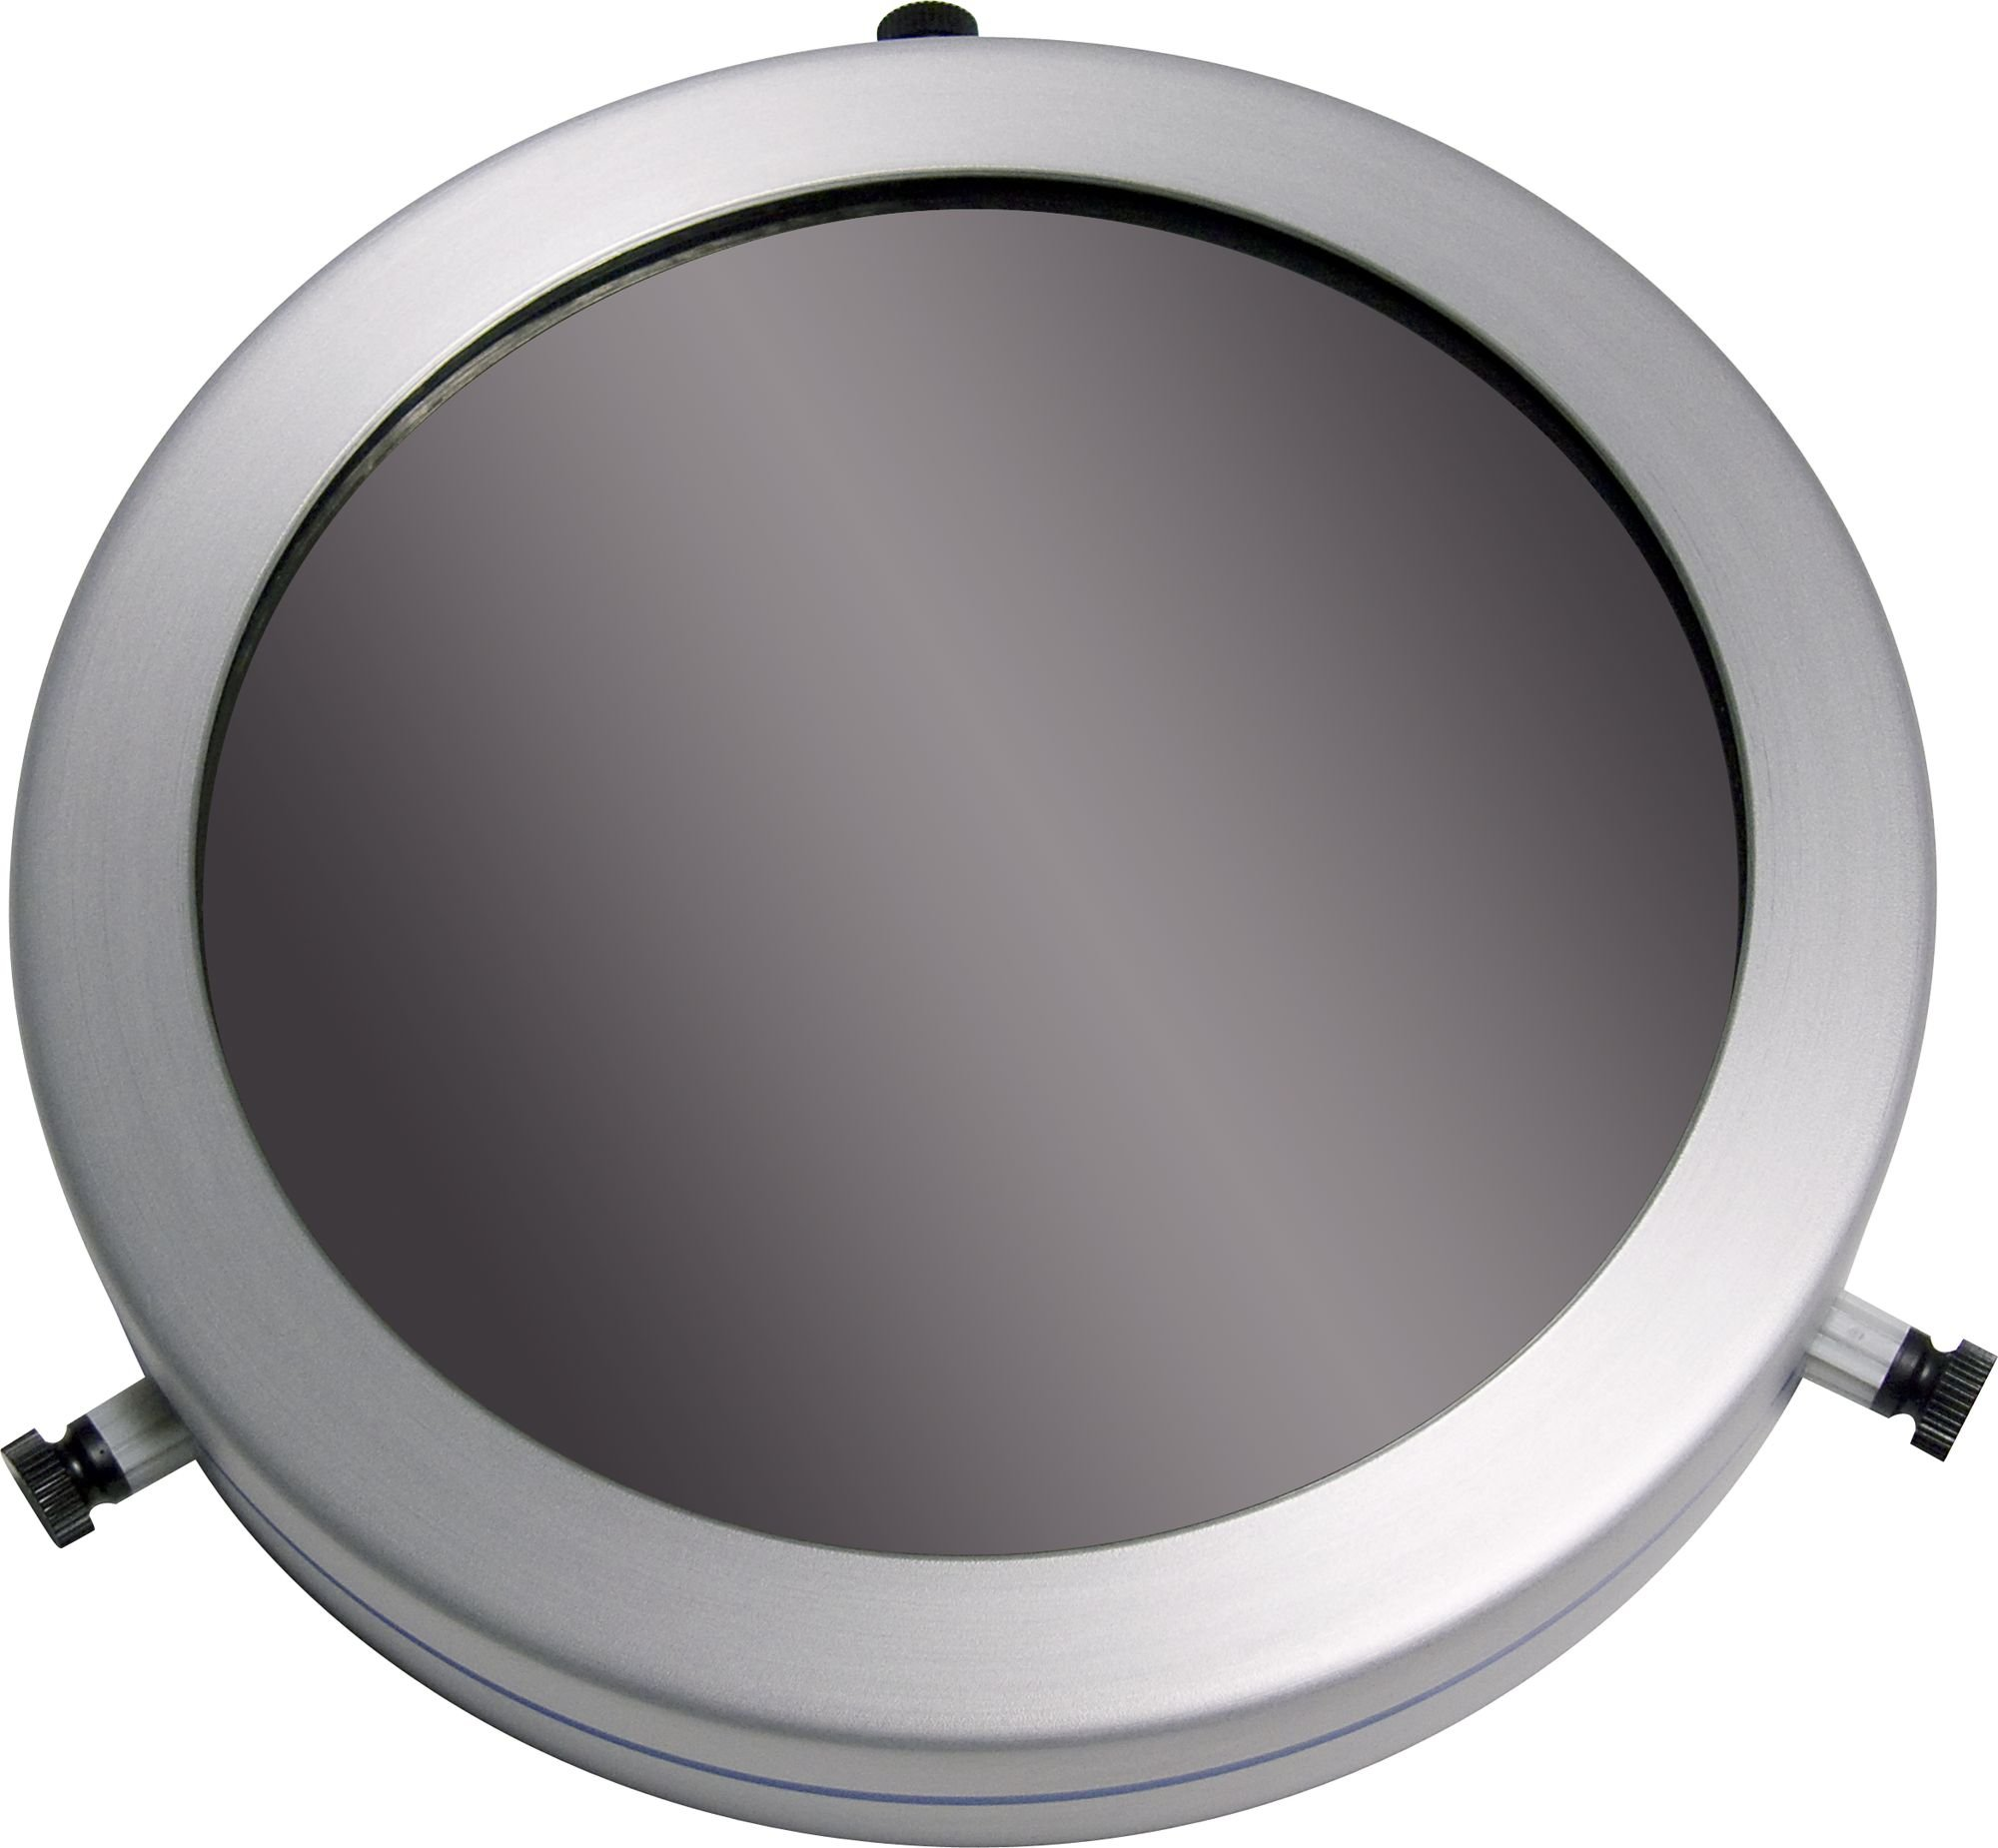 Orion 07737 6.58-Inch ID Full Aperture Glass Telescope Solar Filter (Silver) by Orion